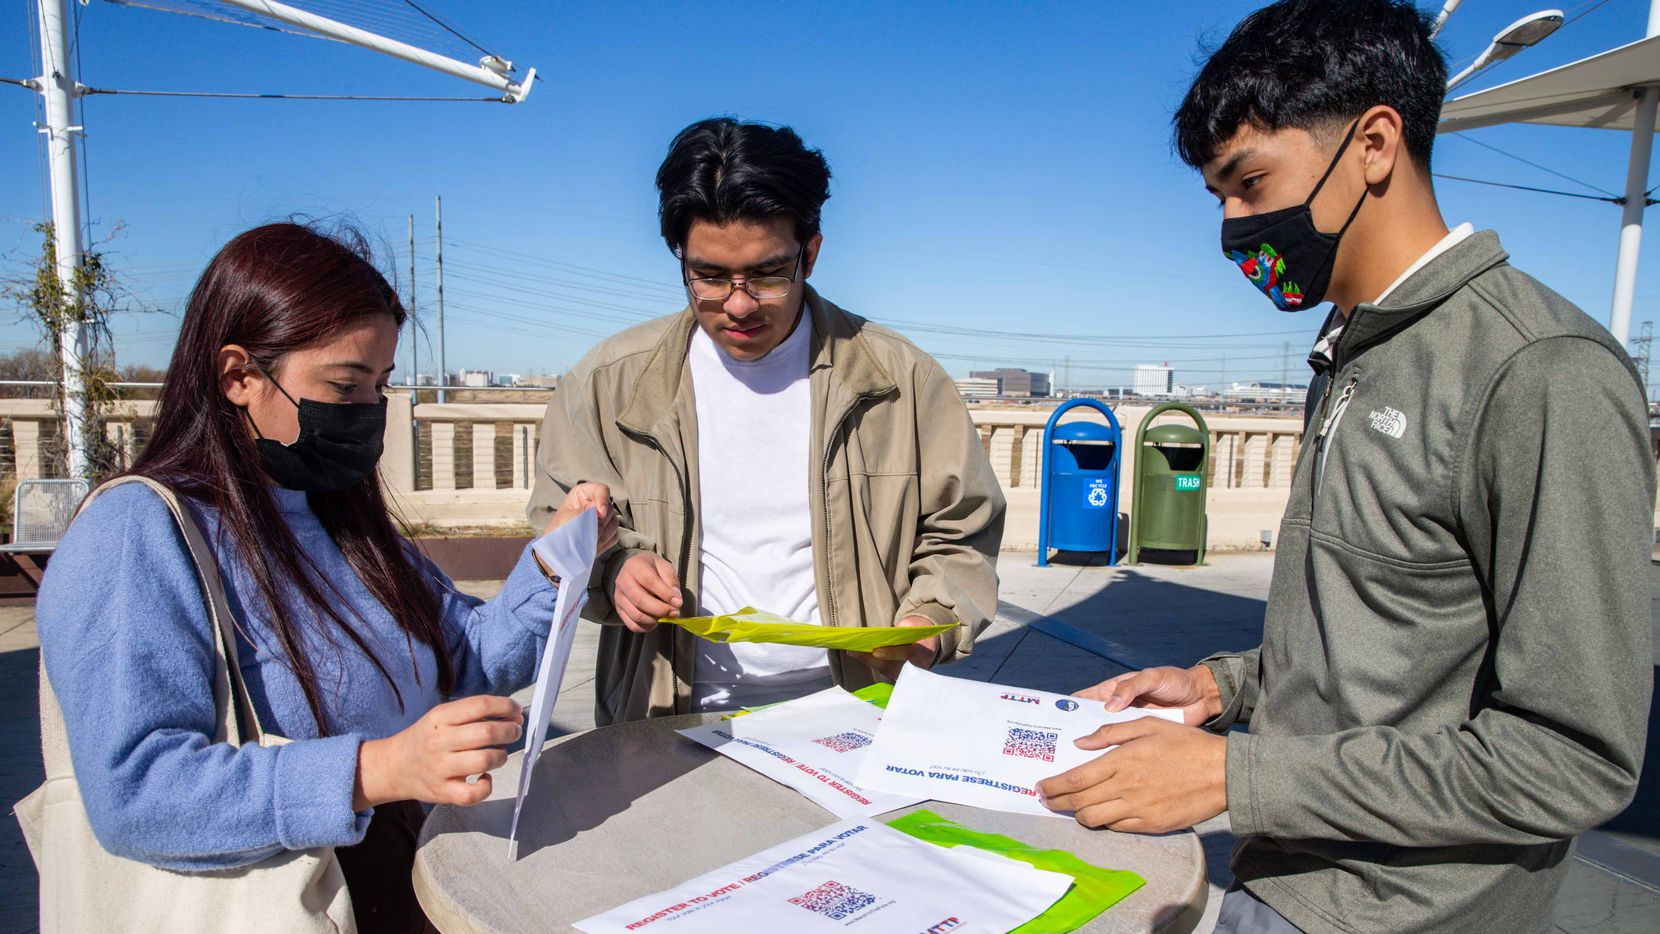 From left, high schoolers Daniela De La Cruz, Adrian Sanchez, and Angel Garcia Donjuan, show the pamphlets with information about the past presidential elections that they used to inform students through their student-run organization, SVEC. Going into 2021, they are keeping their peers excited about voting for local elections by keeping them informed and engaged in Dallas on Monday, December 21, 2020.